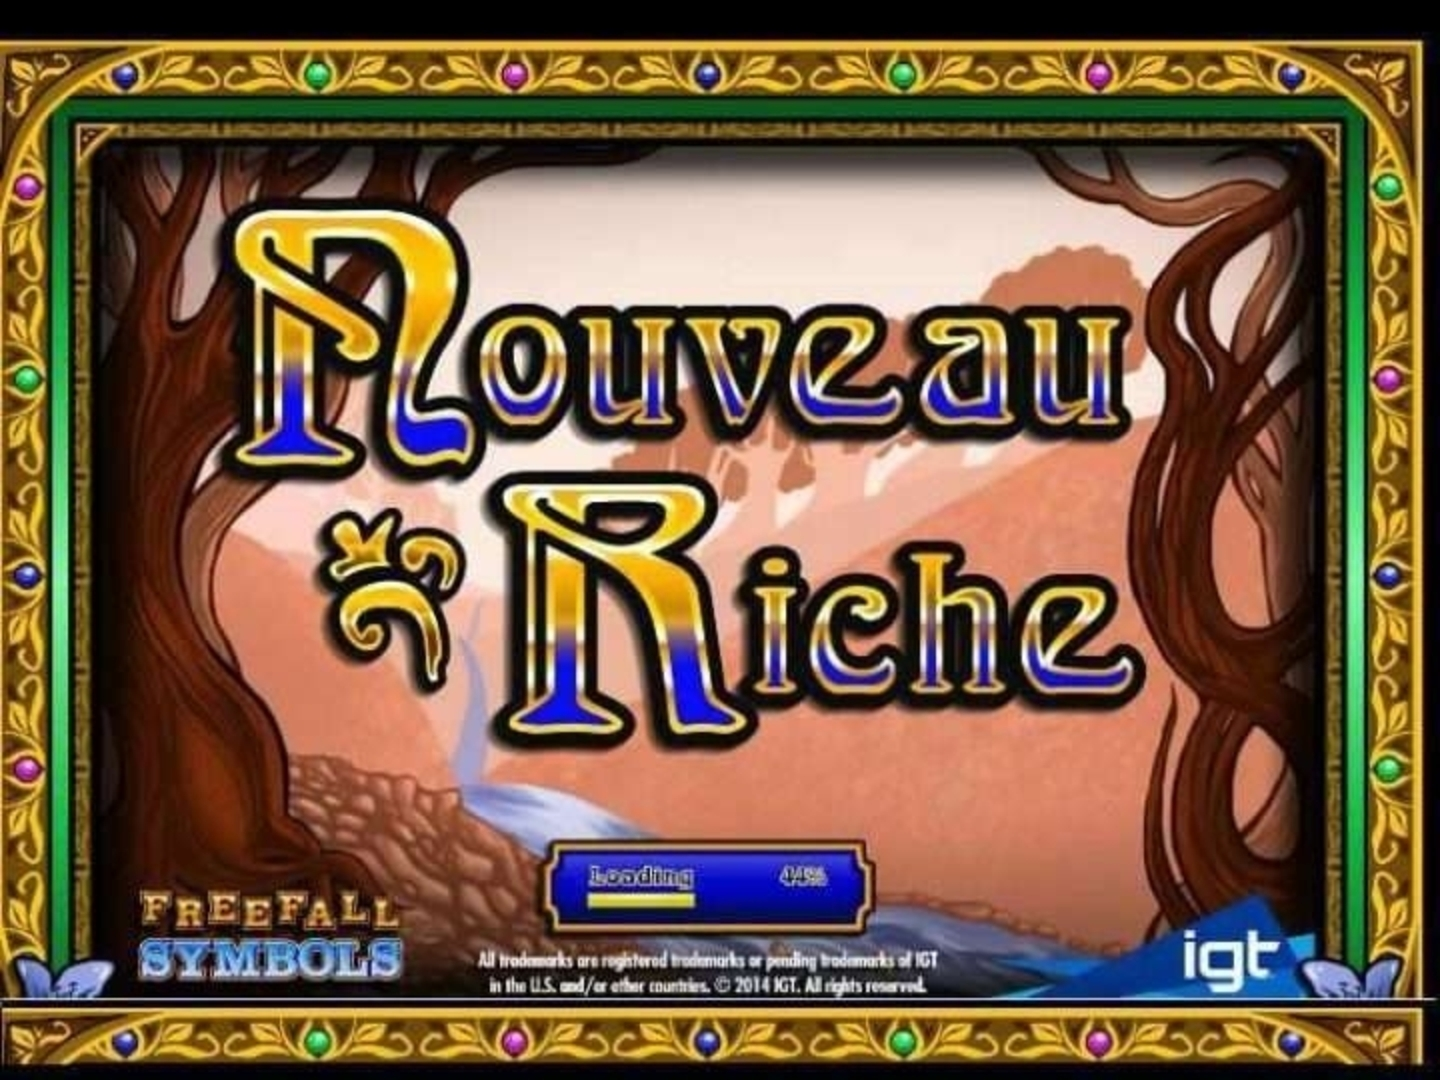 The Nouveau Riche Online Slot Demo Game by IGT